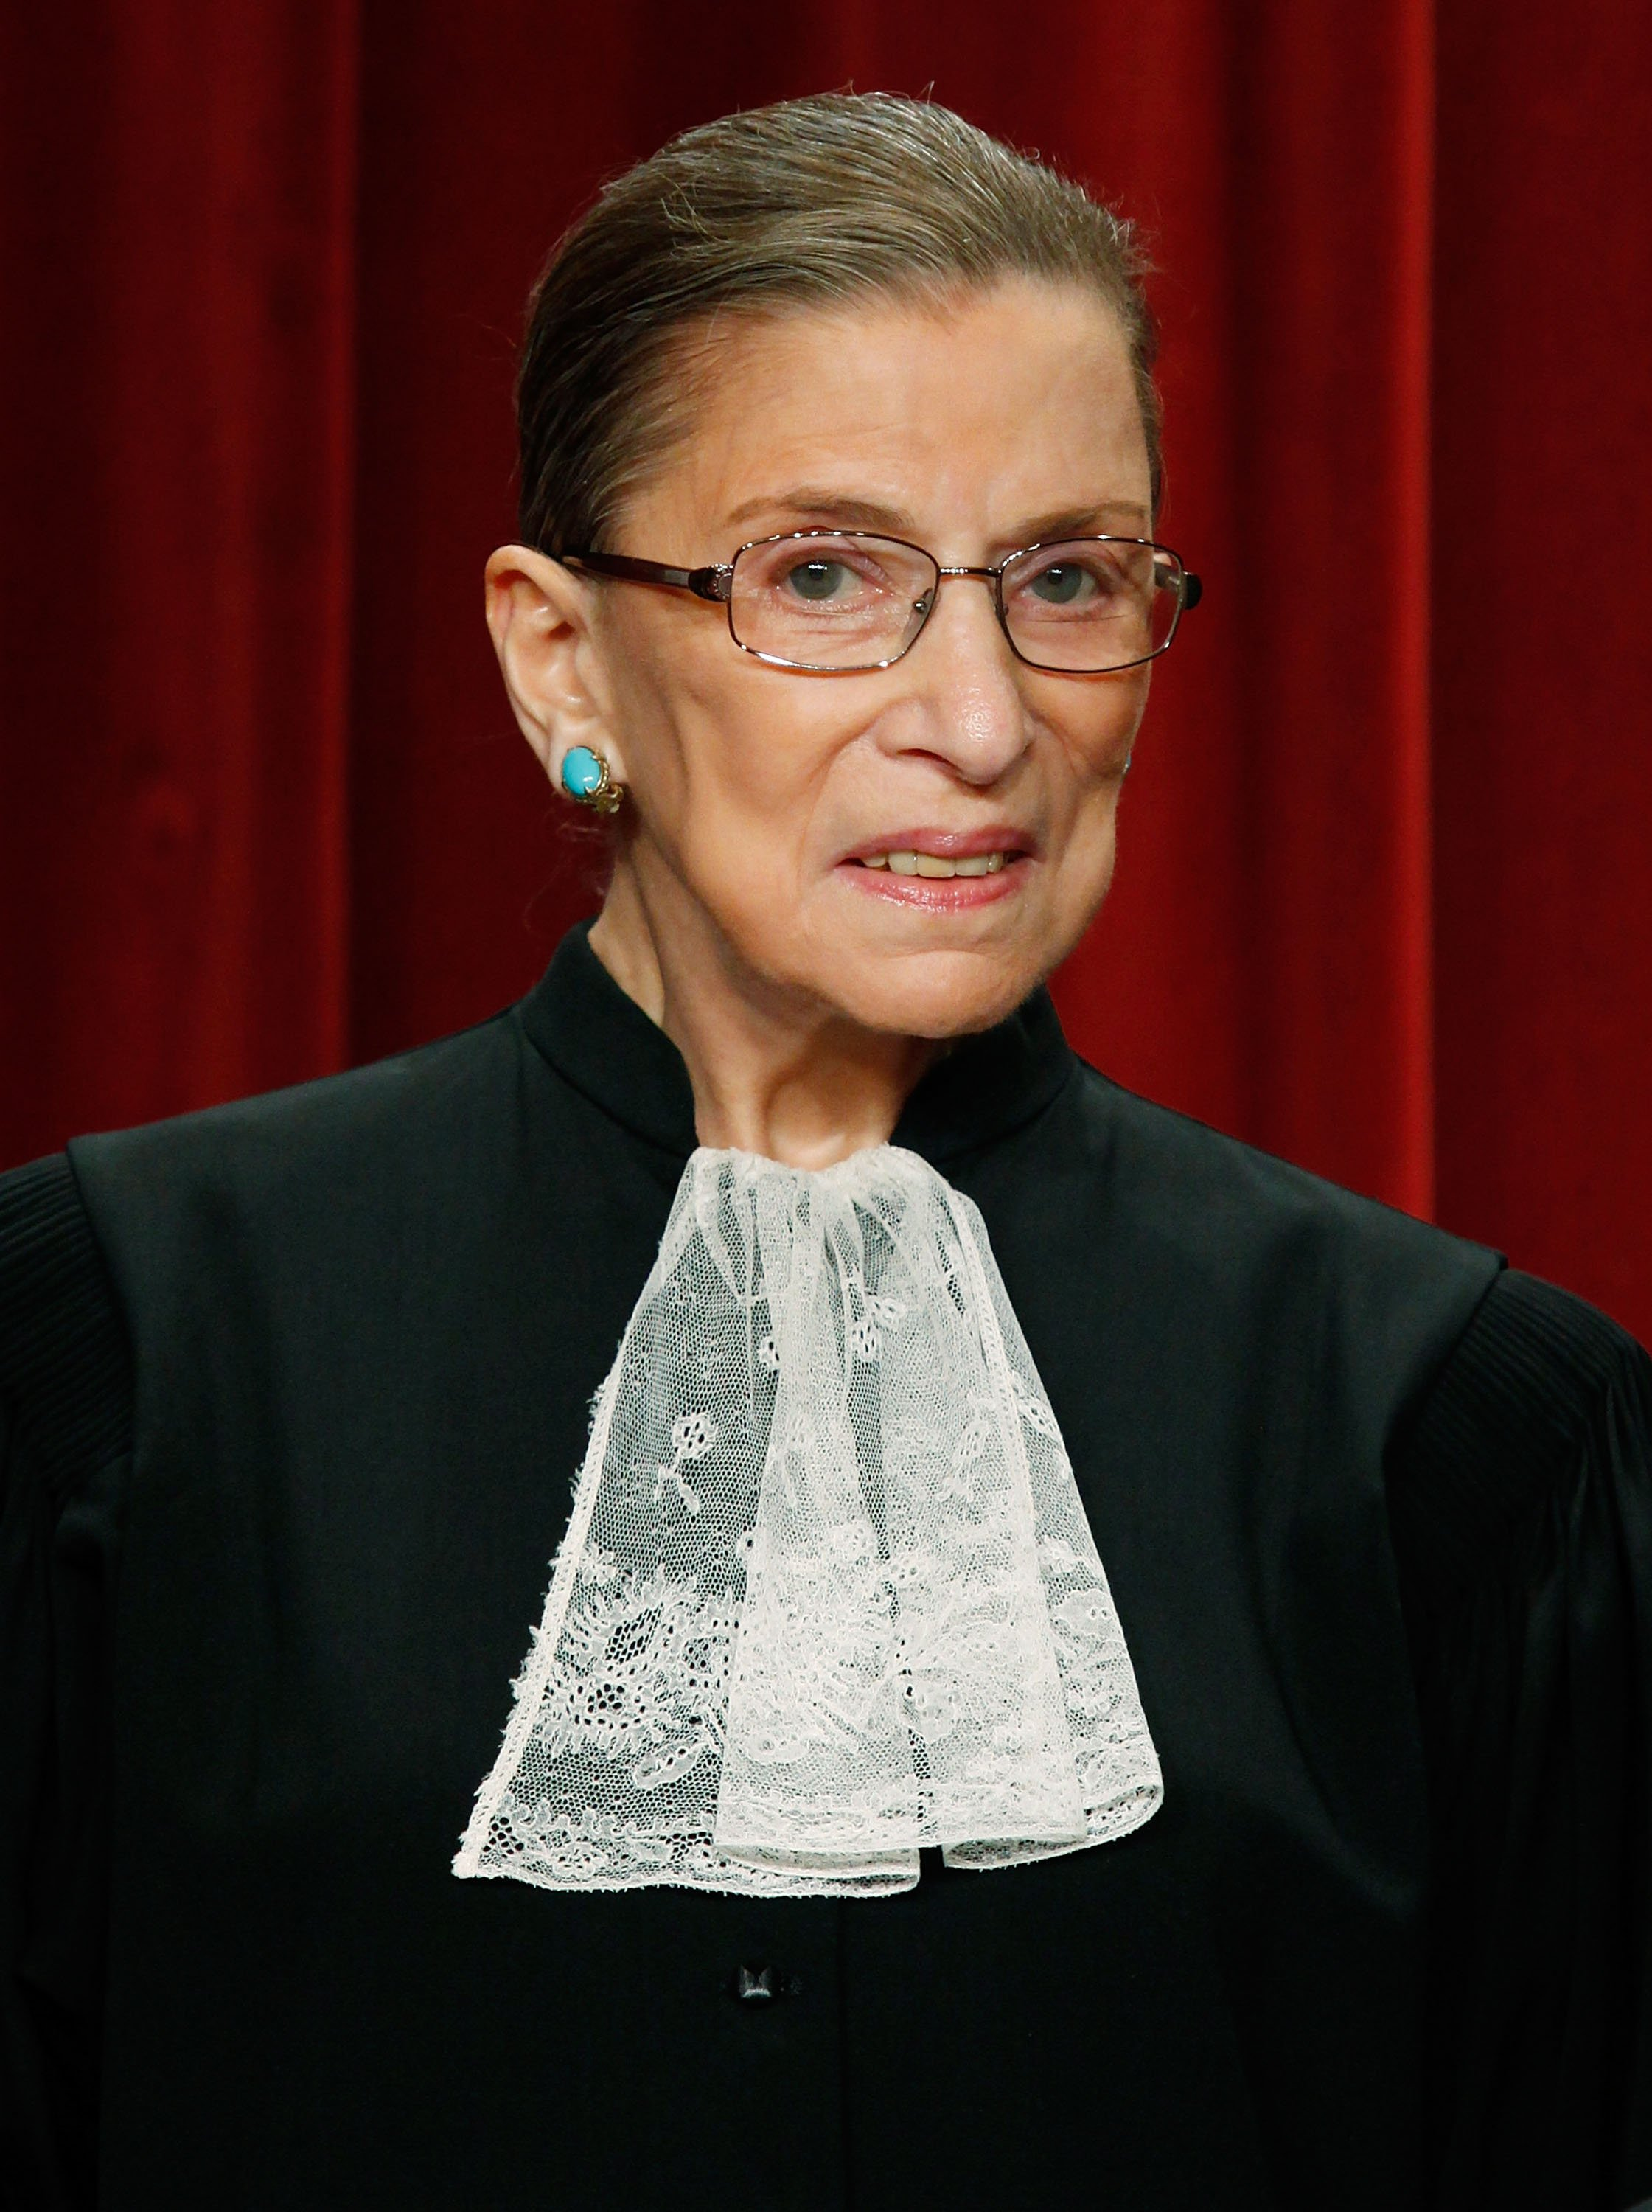 Associate Justice Ruth Bader Ginsburg poses inside the Supreme Court buliding in Washington, D.C. on September 29, 2009 | Photo: Getty Images